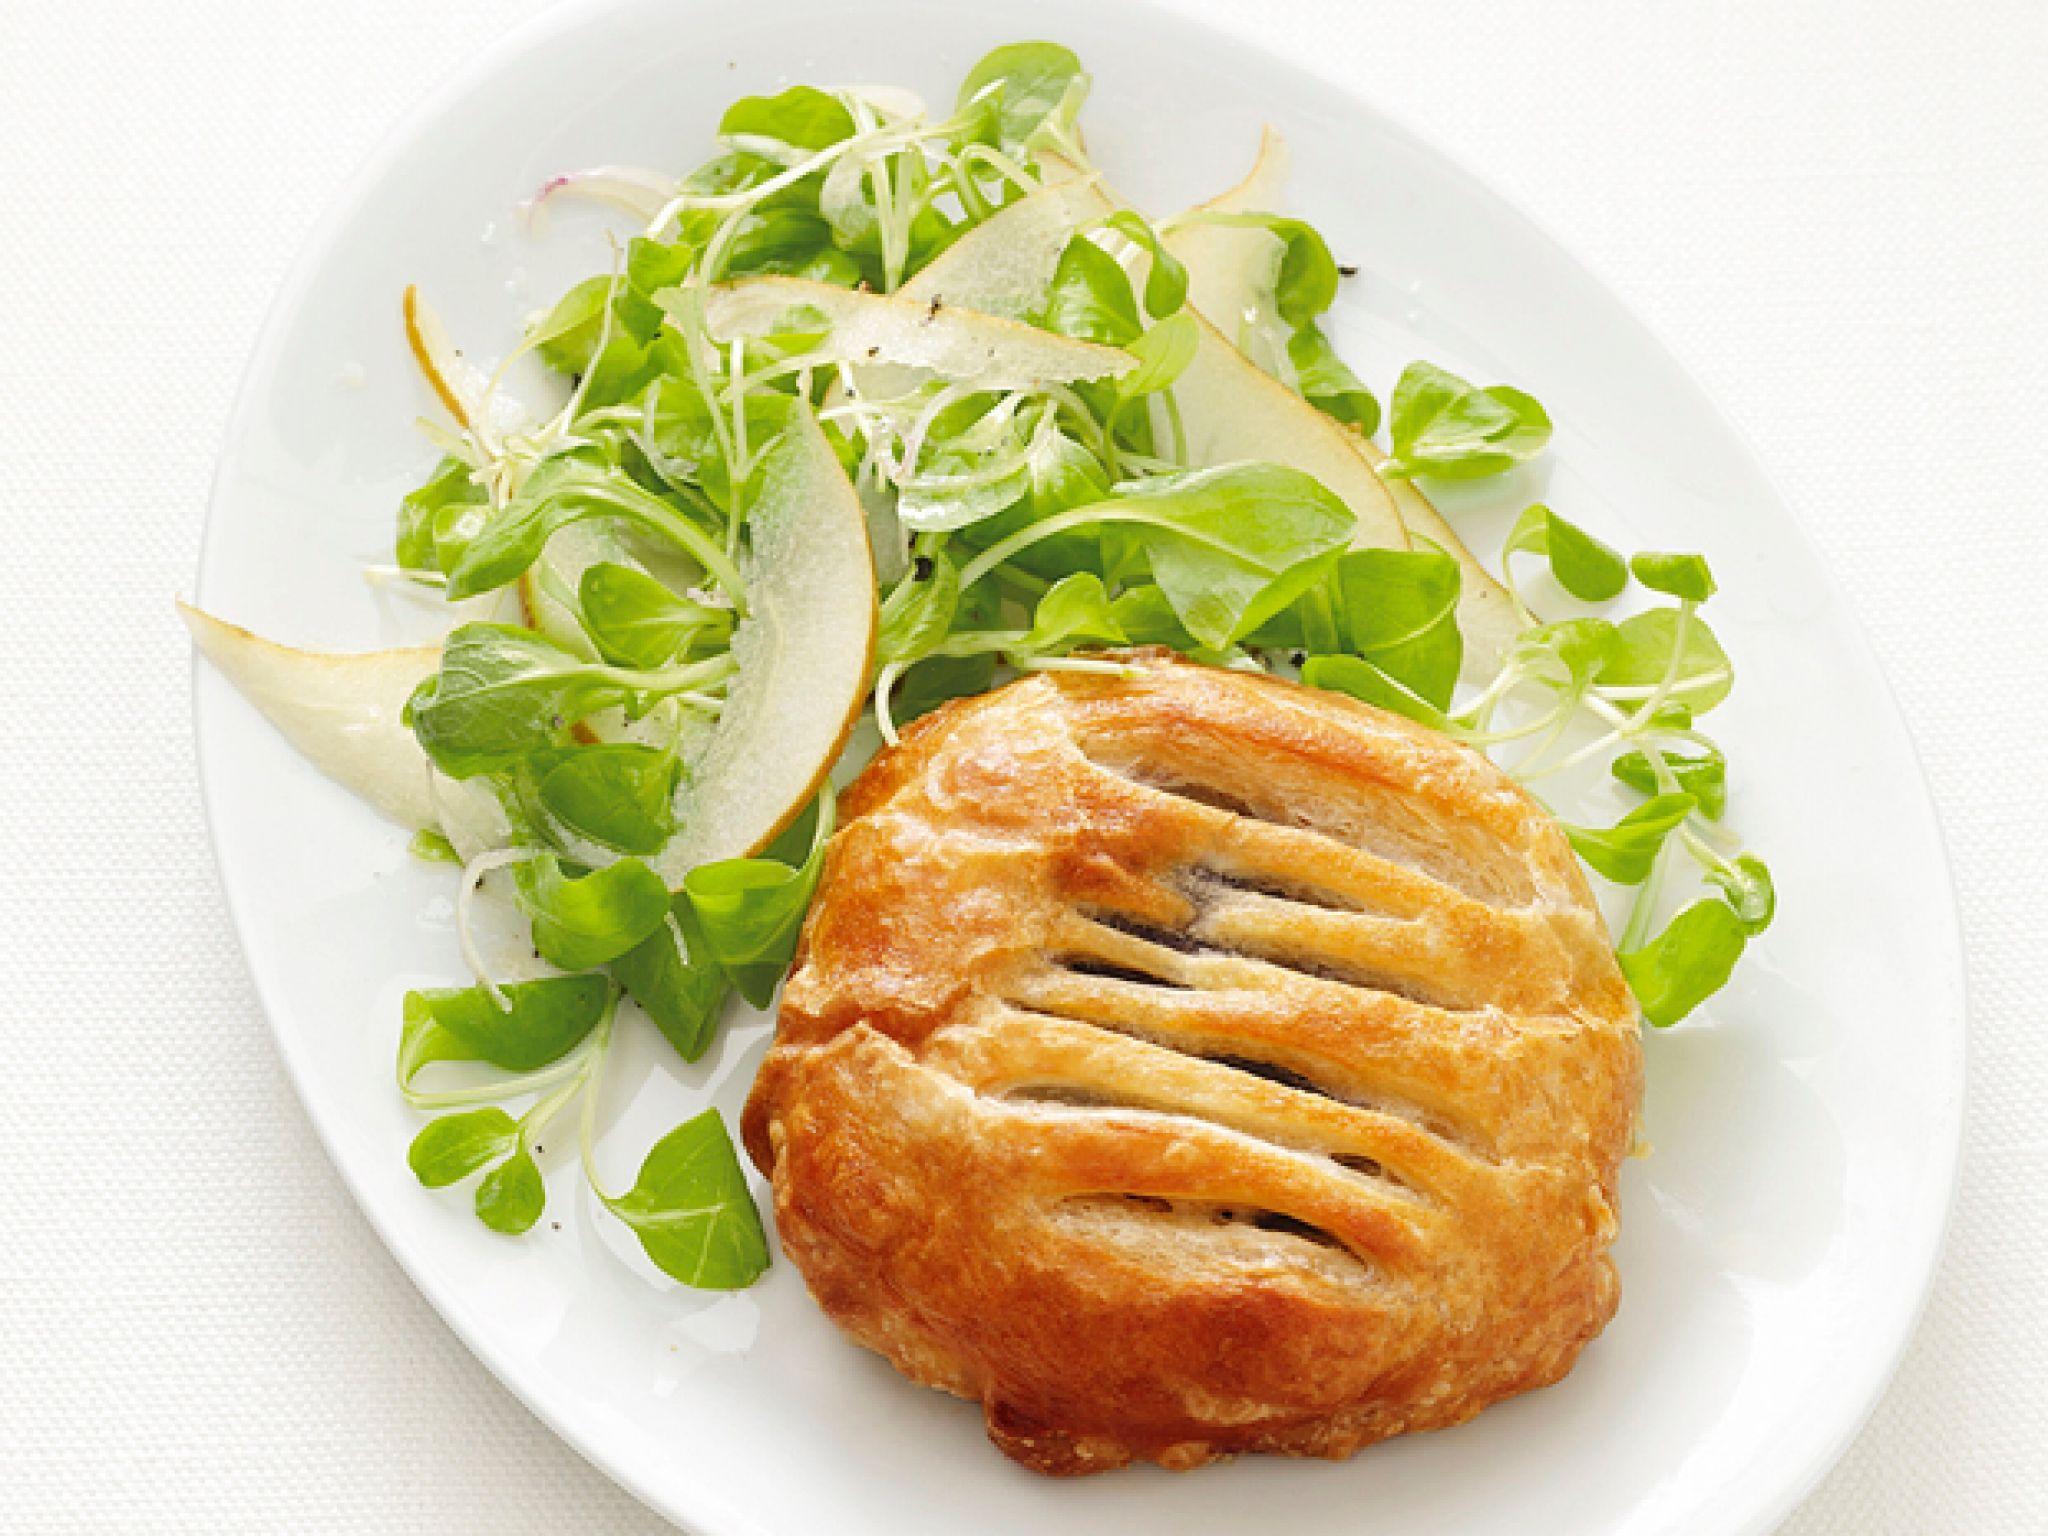 Mushroom Pies with Pear Salad recipe from Food Network Kitchen via Food Network